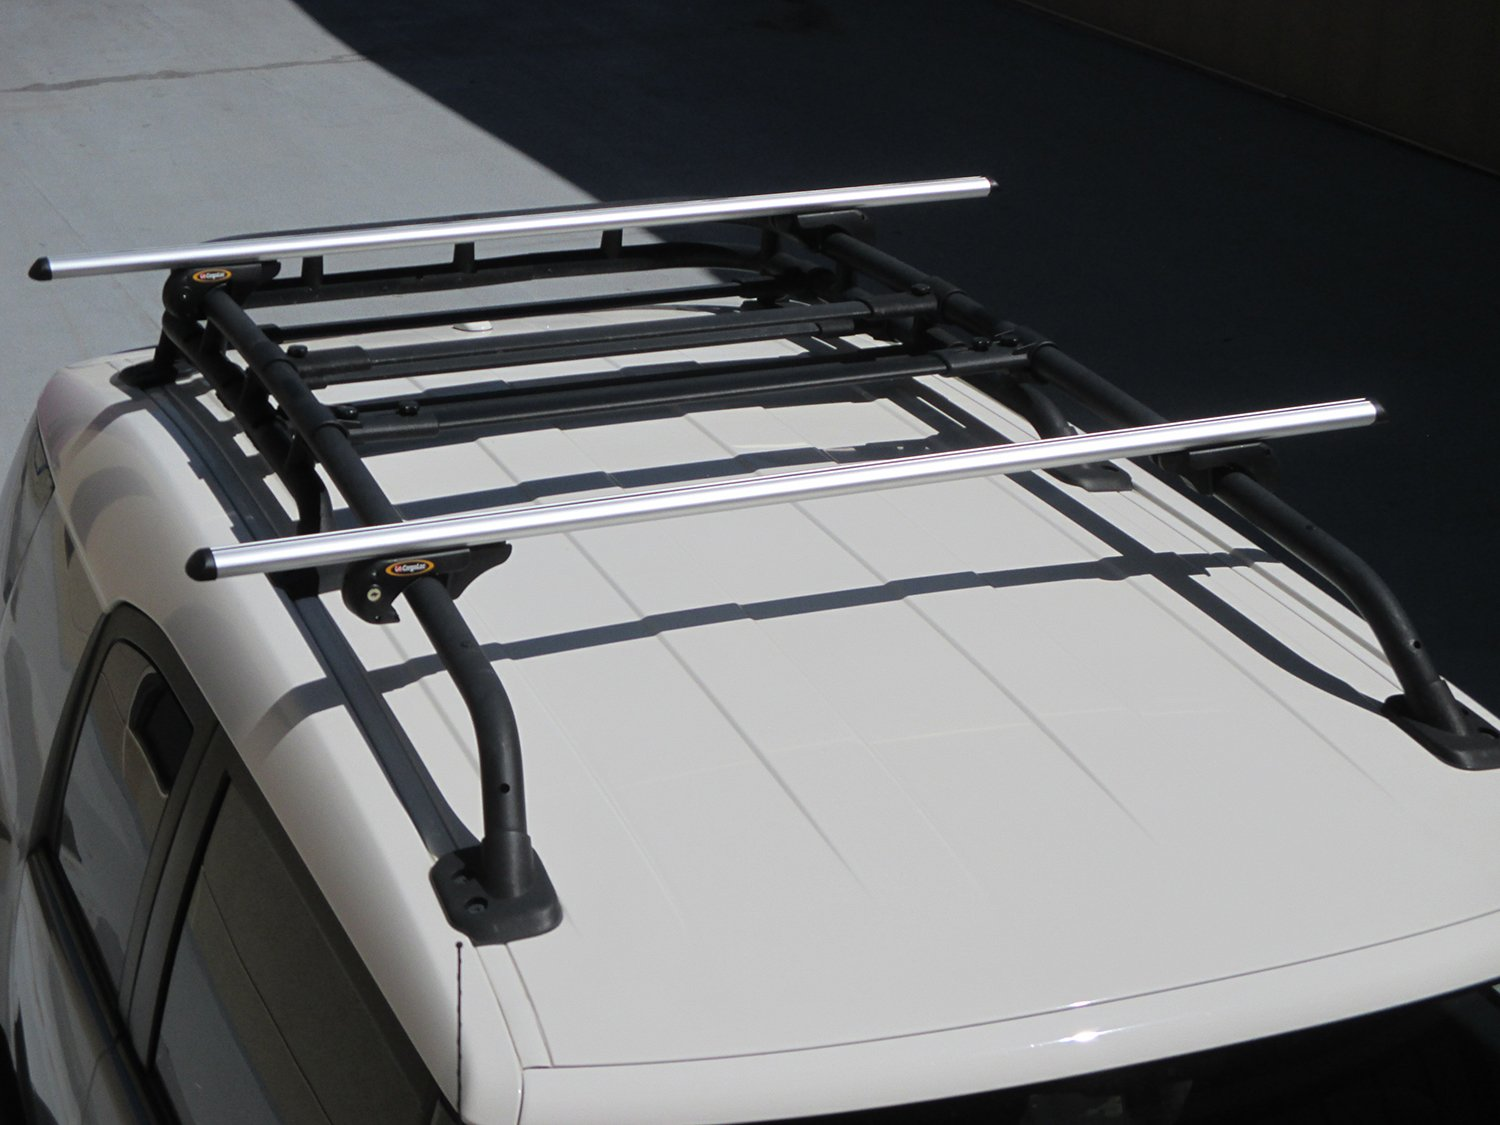 ABN 60 Inch Long Adjustable Cross Bars Roof Rack with 2 Key Locks for Vehicle Raised Side Rail Adjusts Up to 55/""